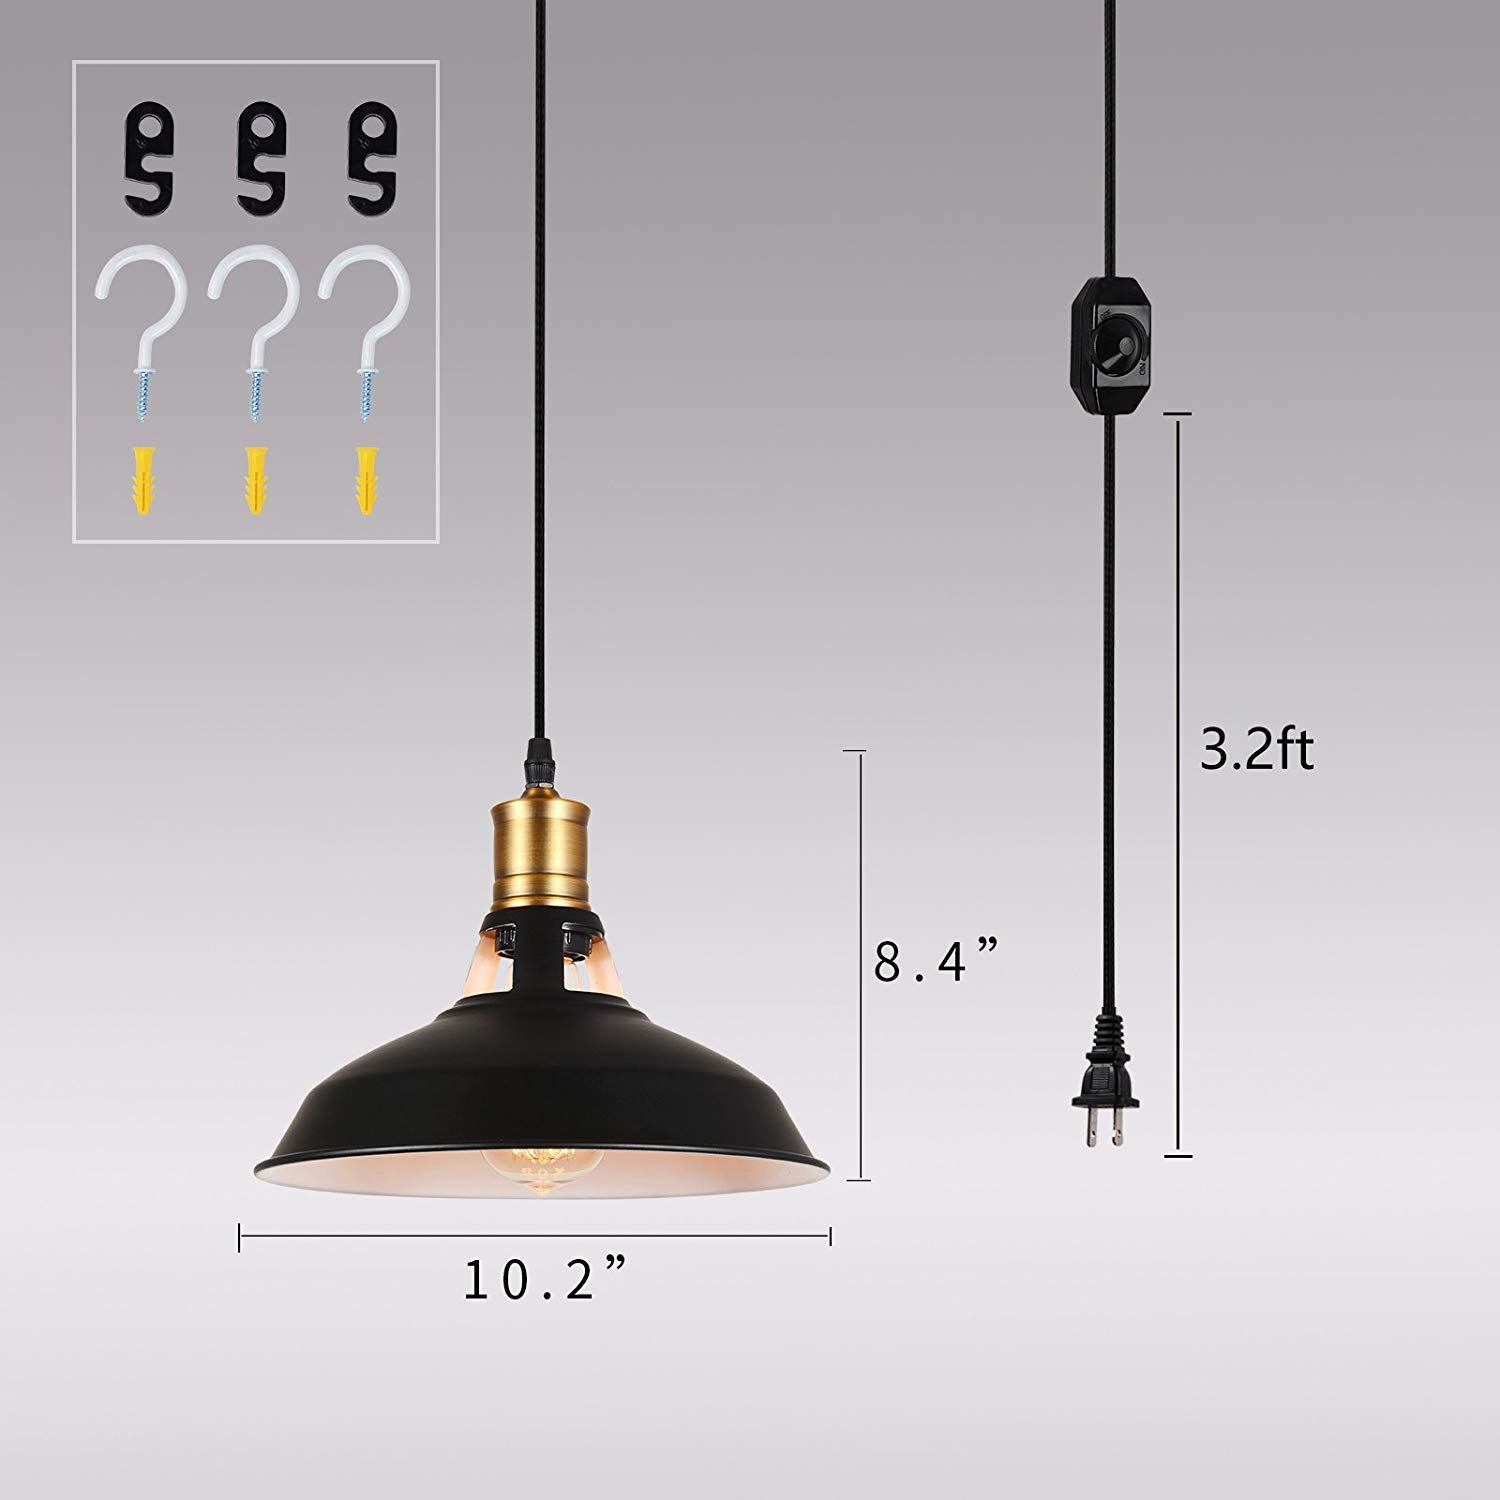 HMVPL Farmhouse Plug in Pendant Lighting Fixtures with Long Hanging Cord and Dimmer Switch, Vintage Hanging Chandelier Black Industrial Swag Ceiling Lamp for Kitchen Island Dining Table Pack of 2